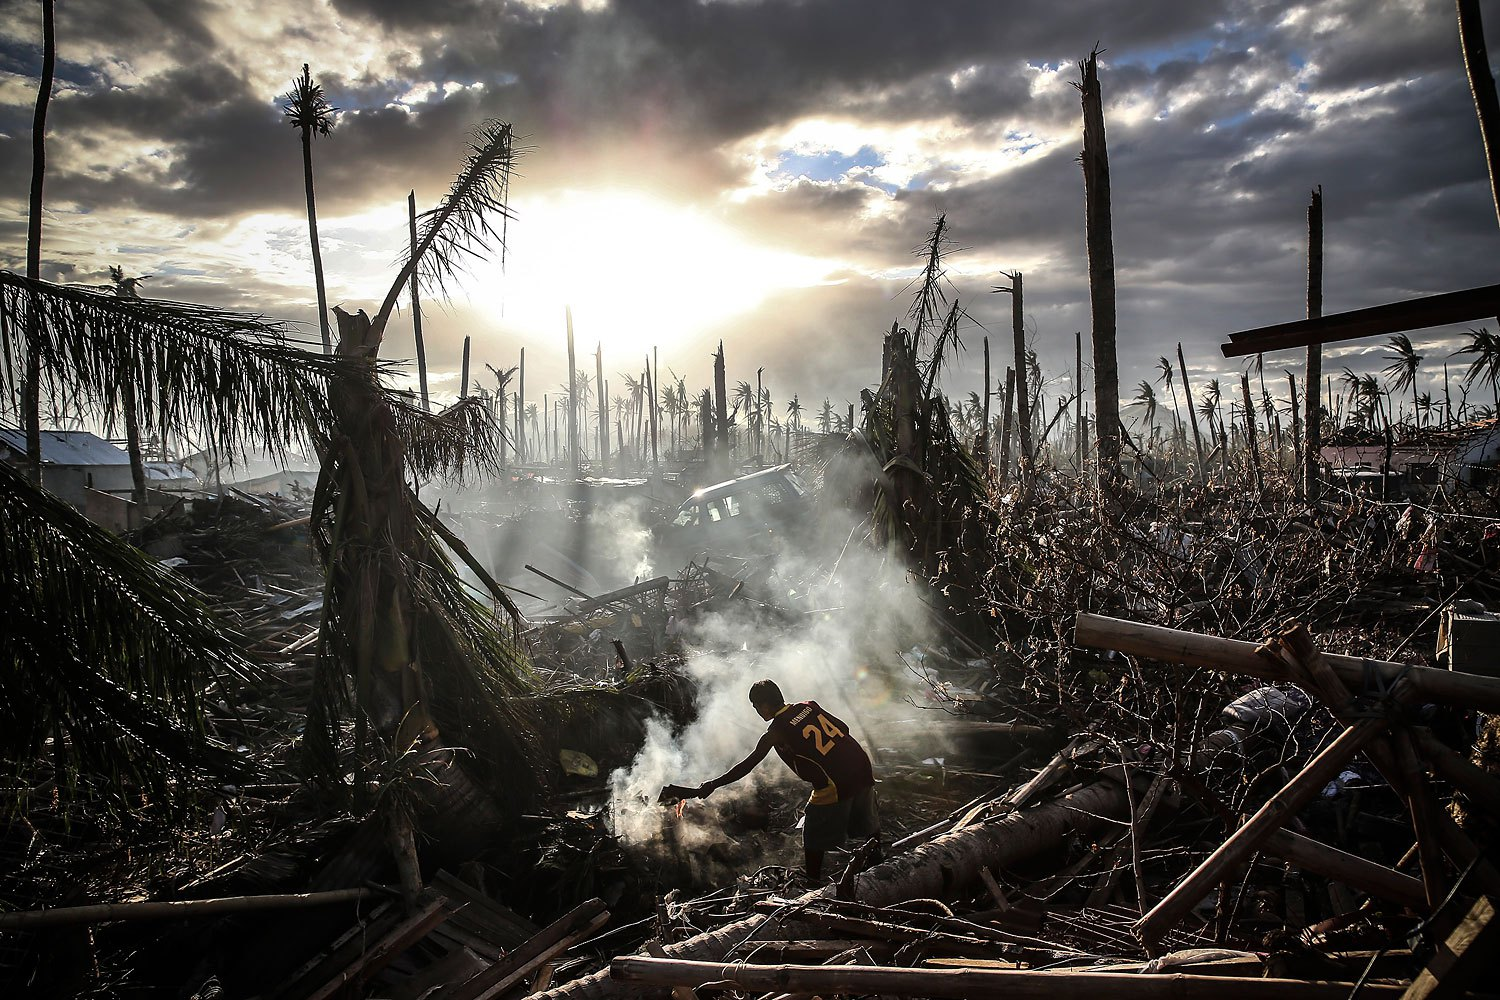 A man fans flames on a fire in Tanauan, Leyte province, Philippines, on November 19, 2013.